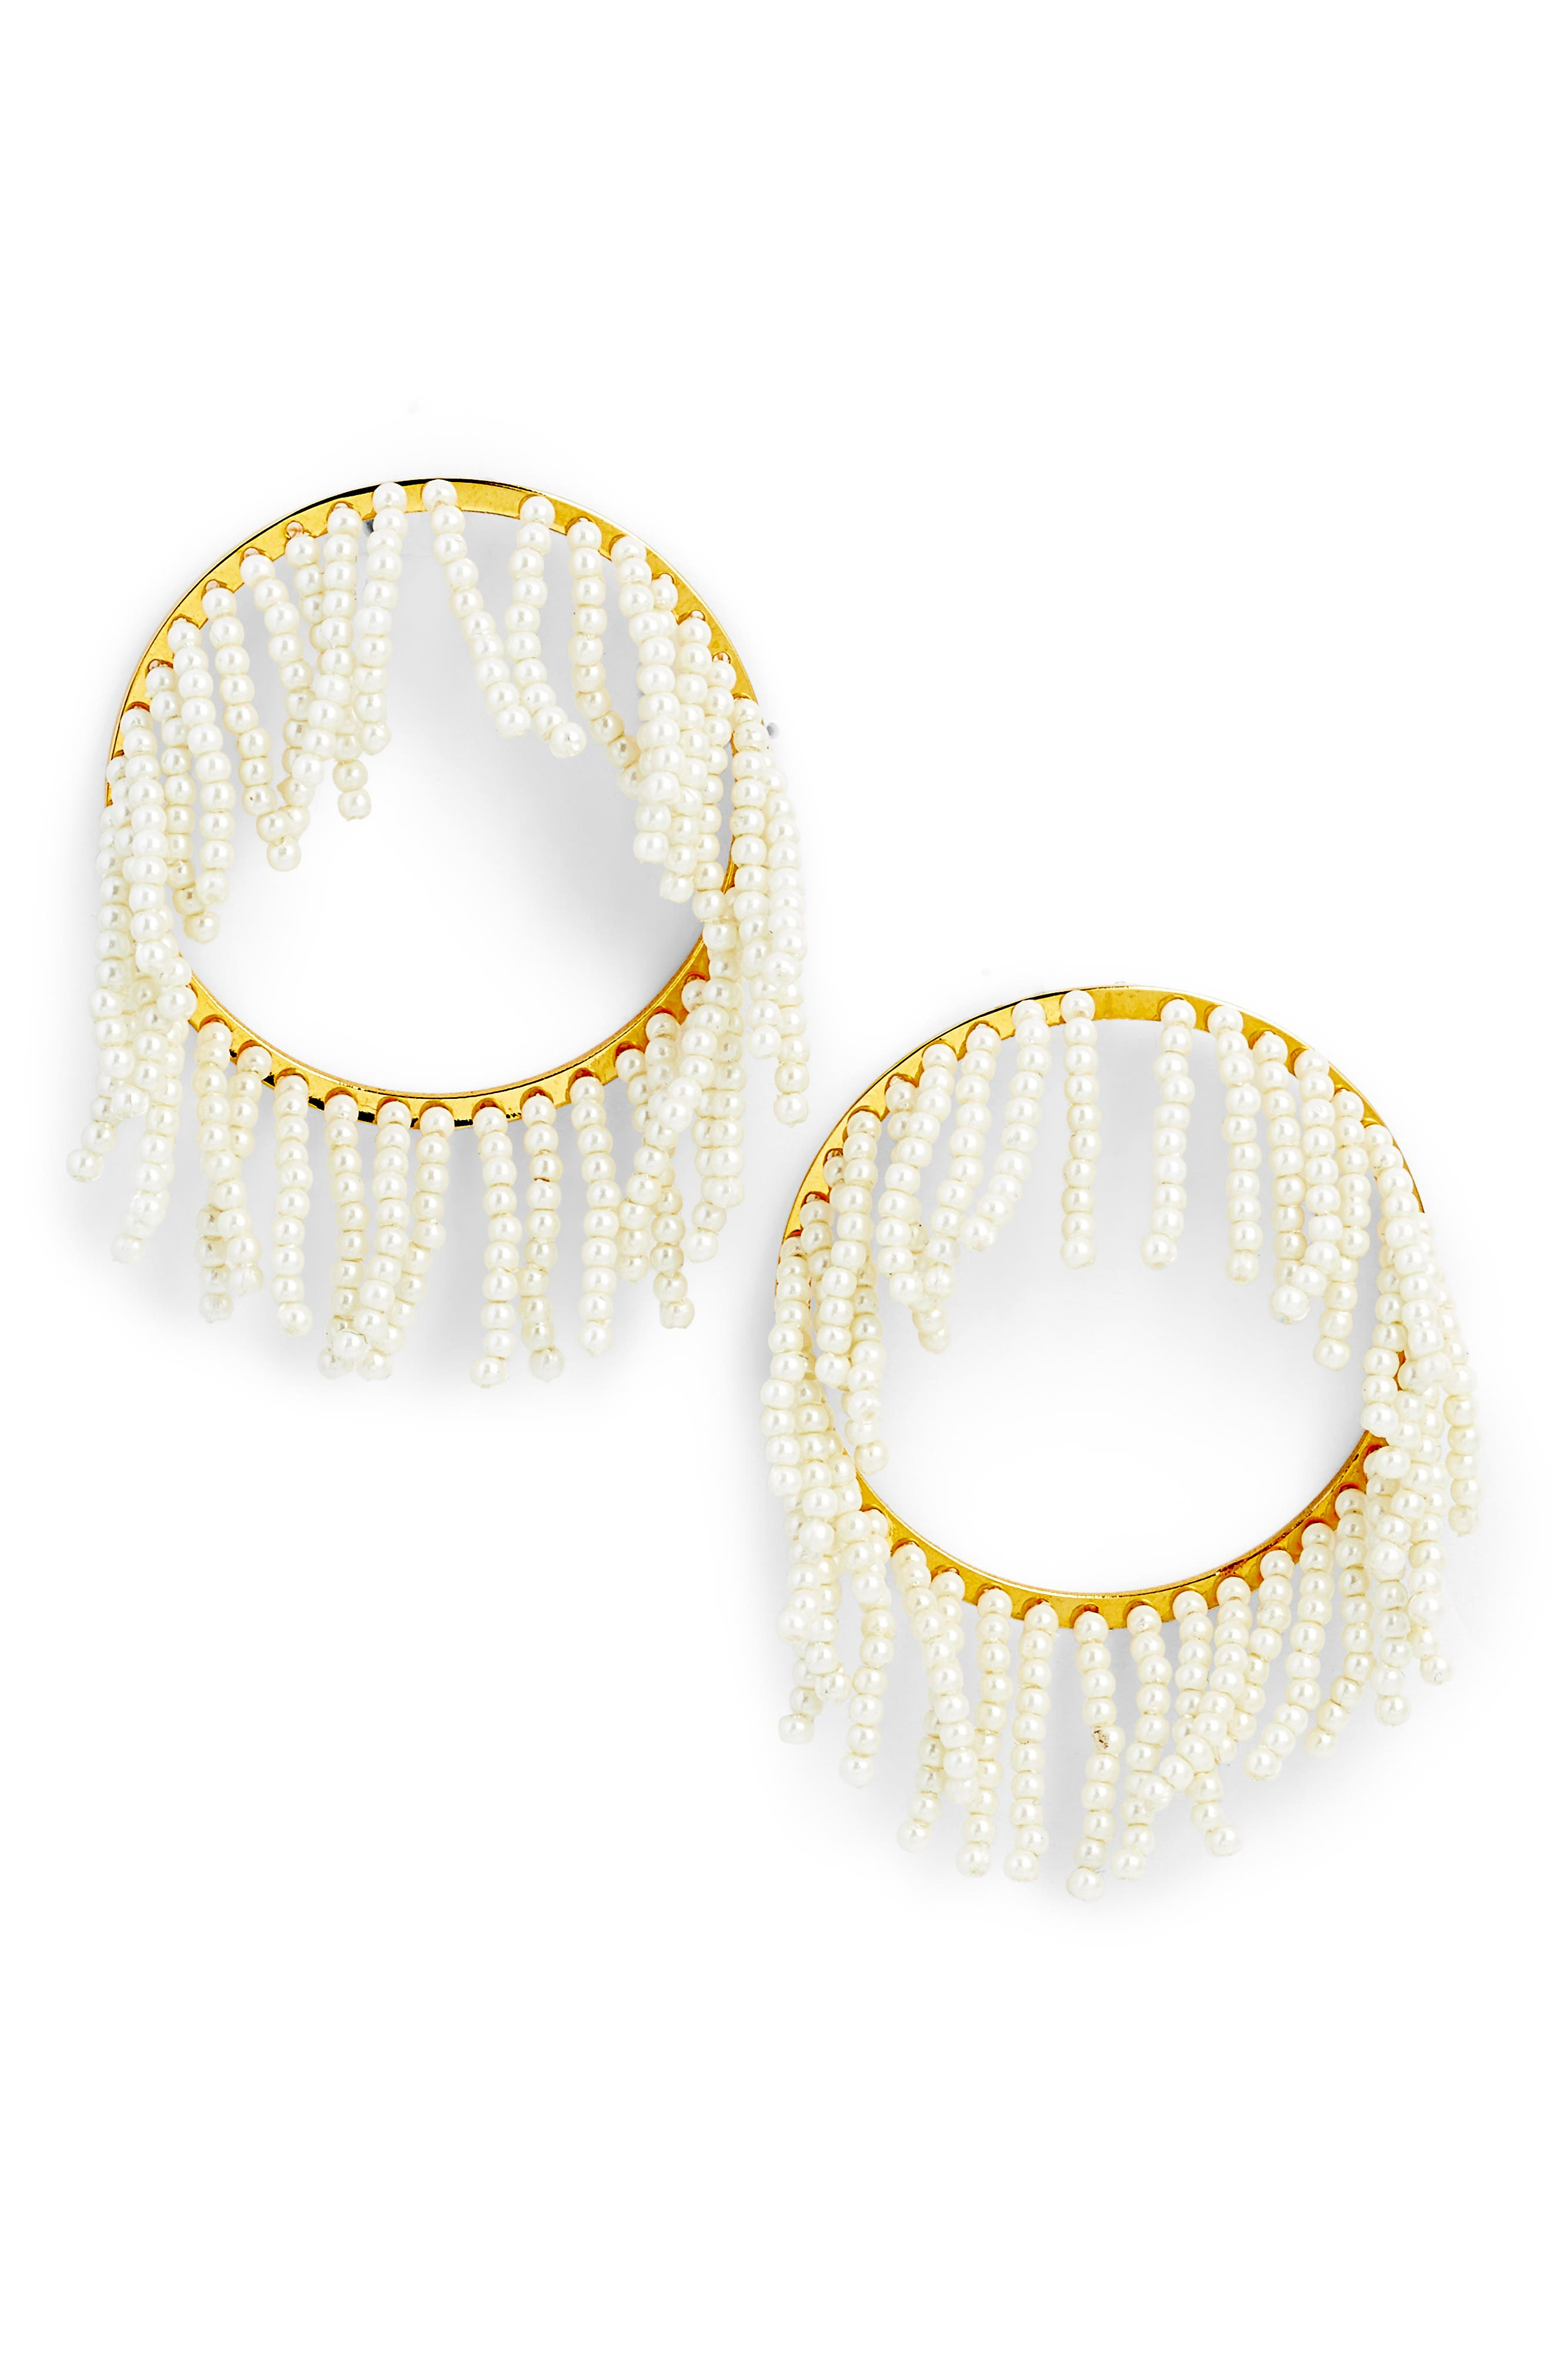 Imitation Pearl Hoop Earrings,                             Main thumbnail 1, color,                             100